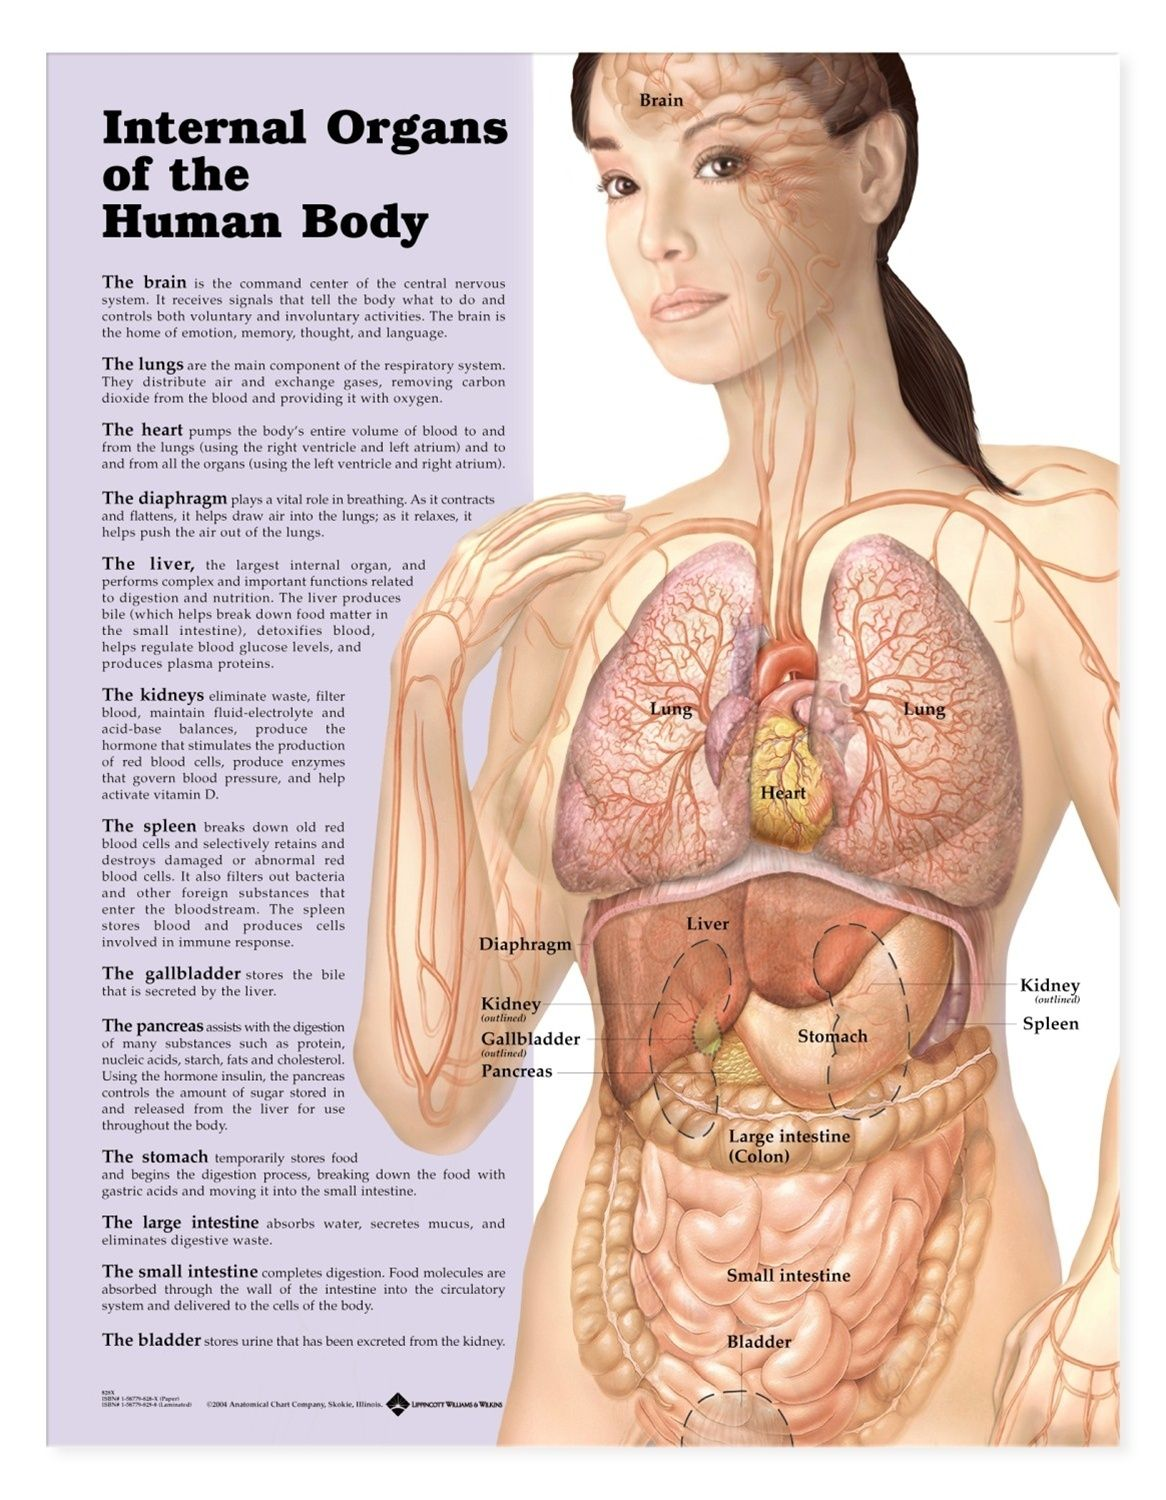 Human Anatomy Diagram, Liver Female Human Anatomy Largest Internal ...